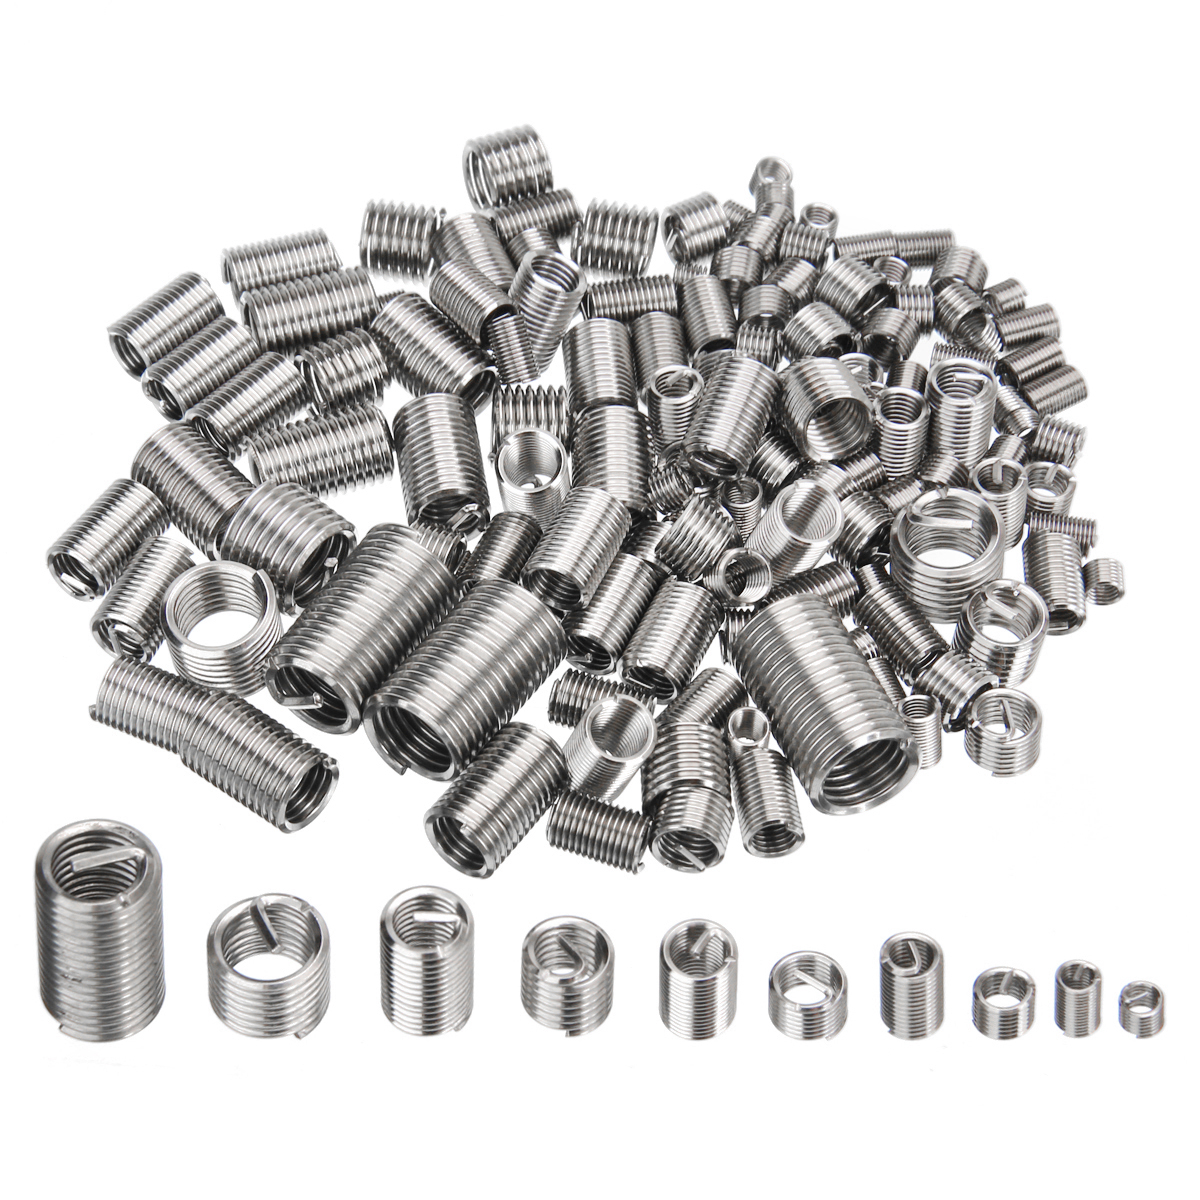 150pcs-m3-m4-m5-m6-m8-thread-repair-insert-kit-set-stainless-steel-helicoil-hardware-fastener-accessories